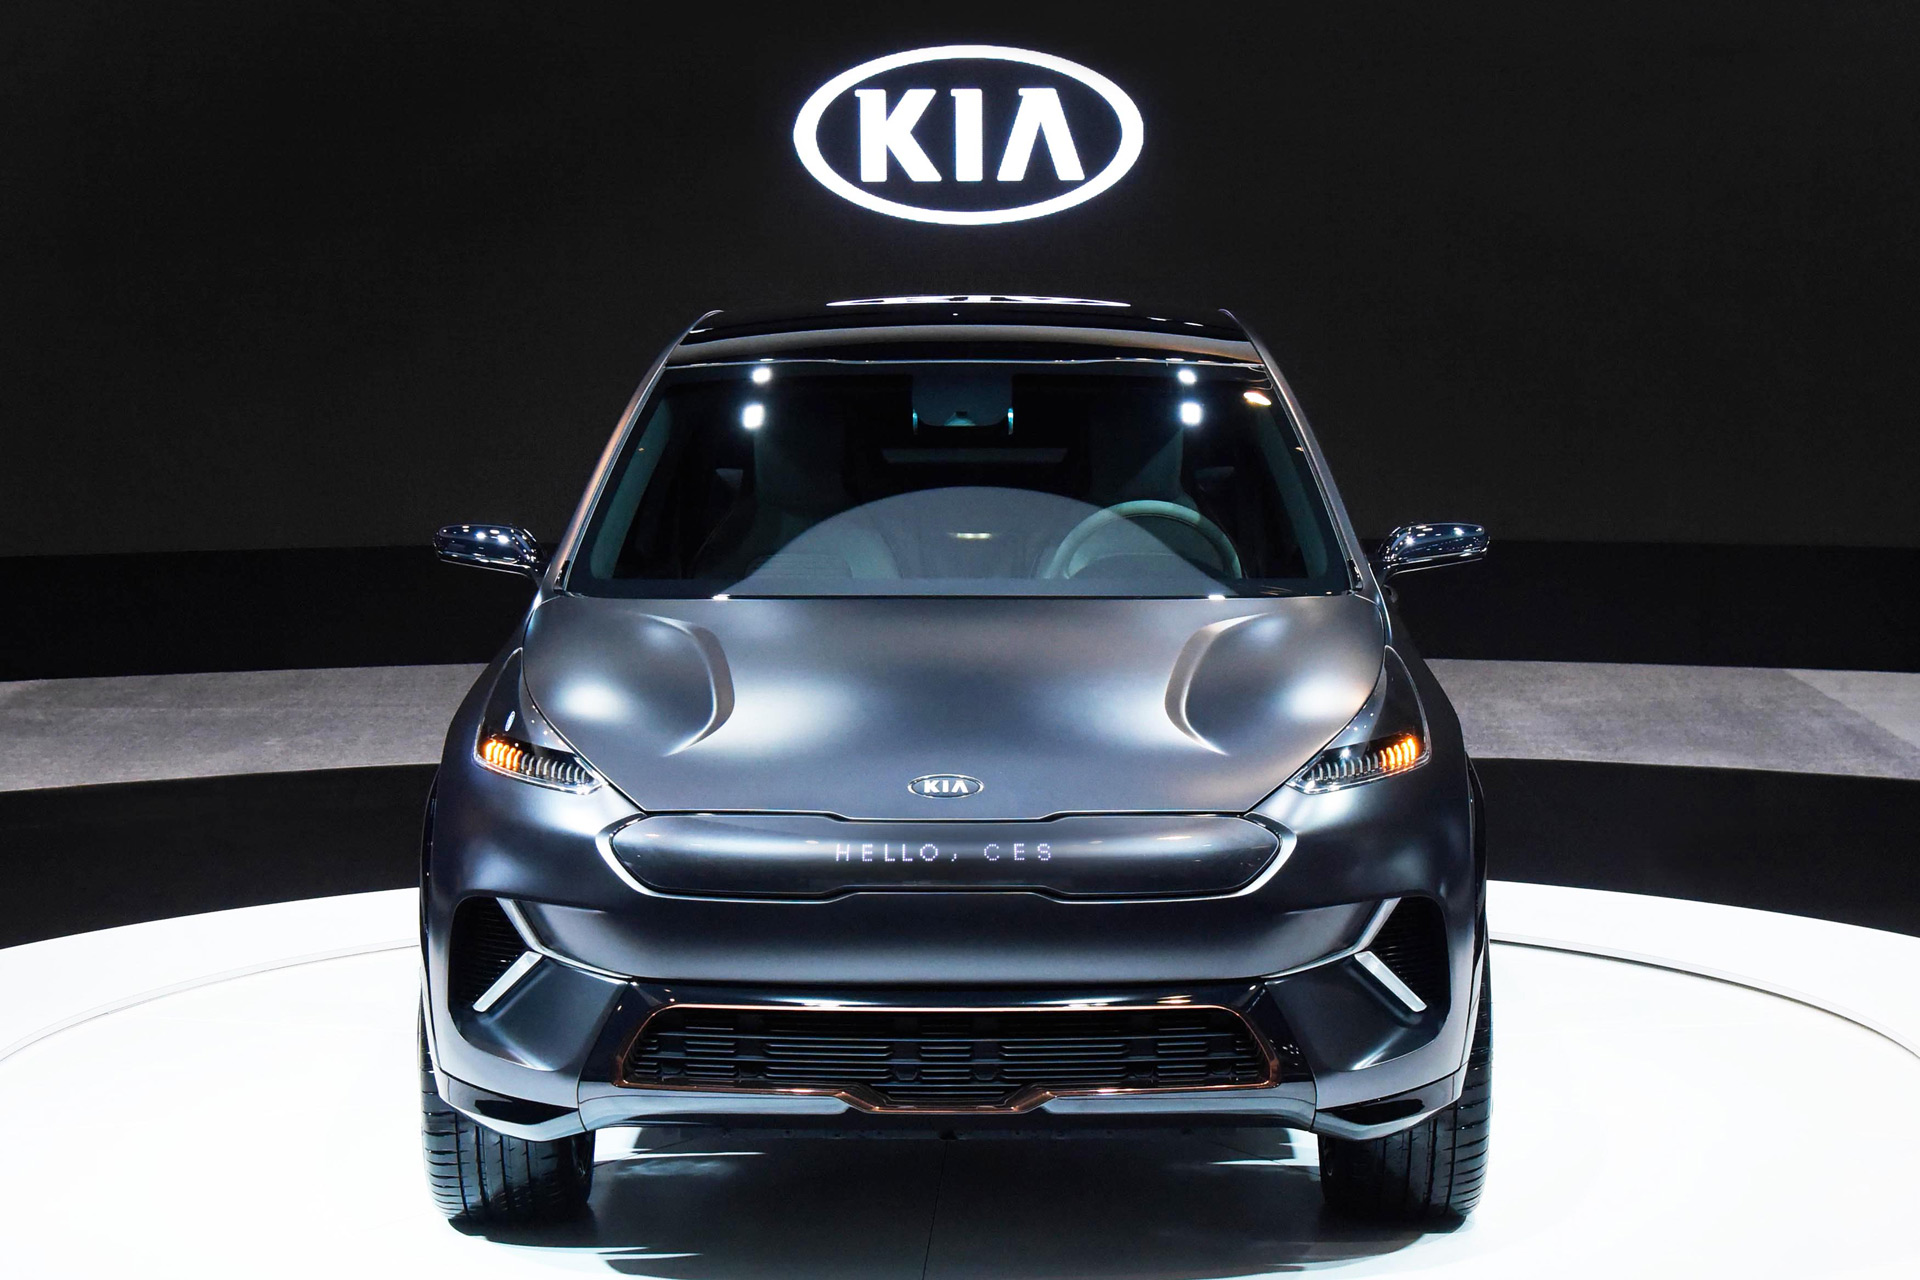 38 The Best 2020 Kia Niro Concept and Review